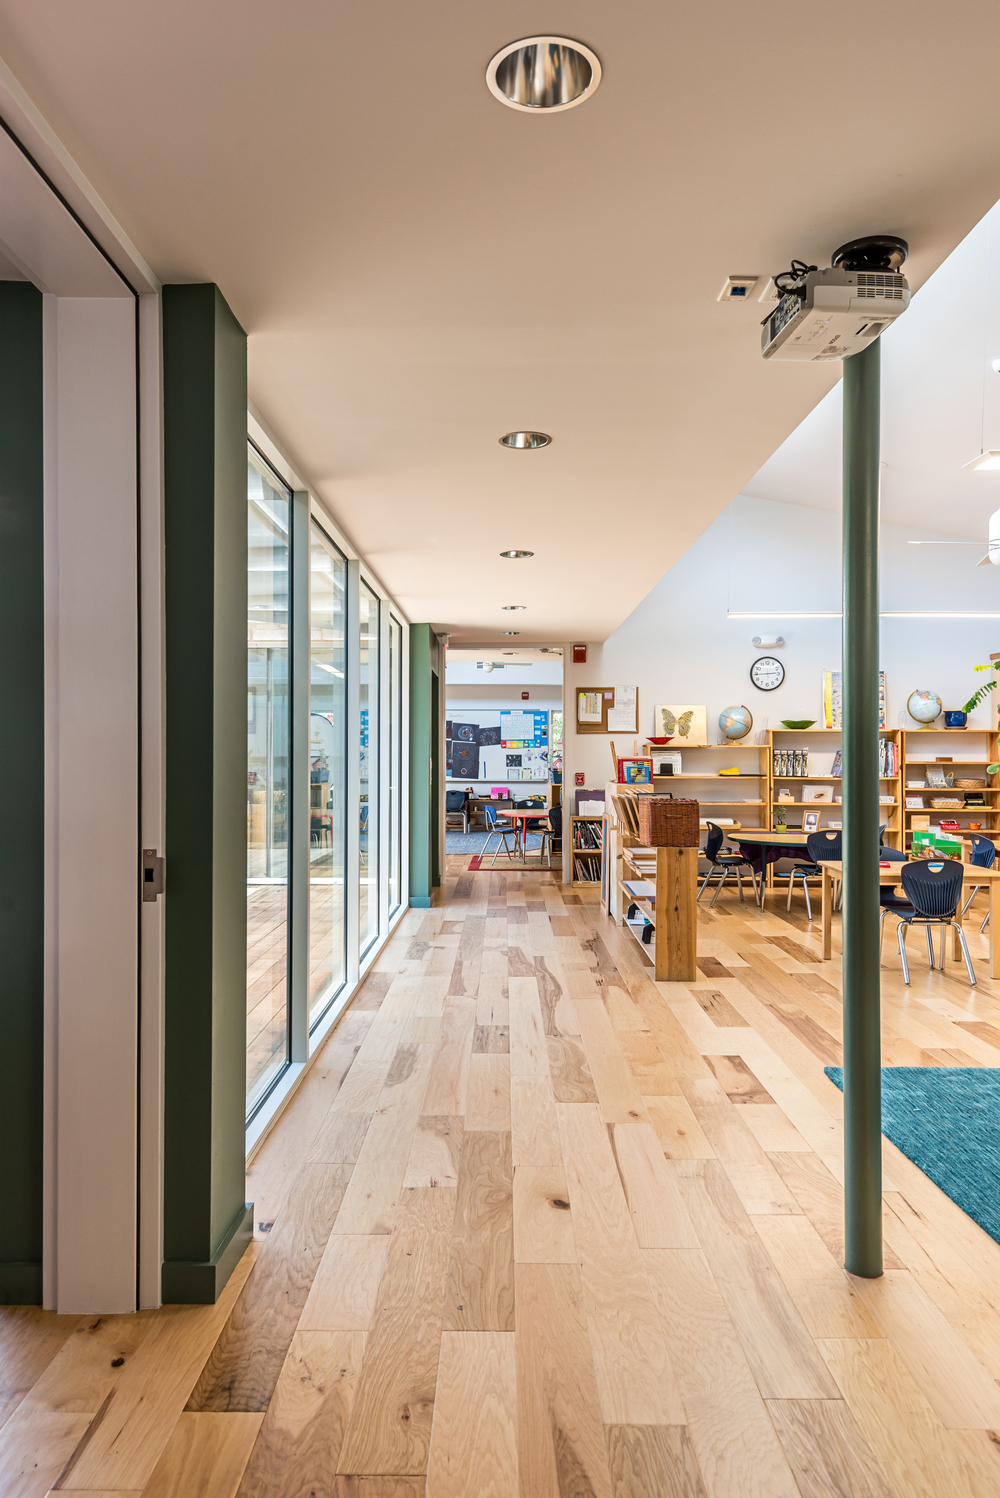 The classrooms are all directly connected with oversized doors to give the teachers the option of expanding the spaces into each other. When it is time to focus, teachers can close the doors, and isolate each space.